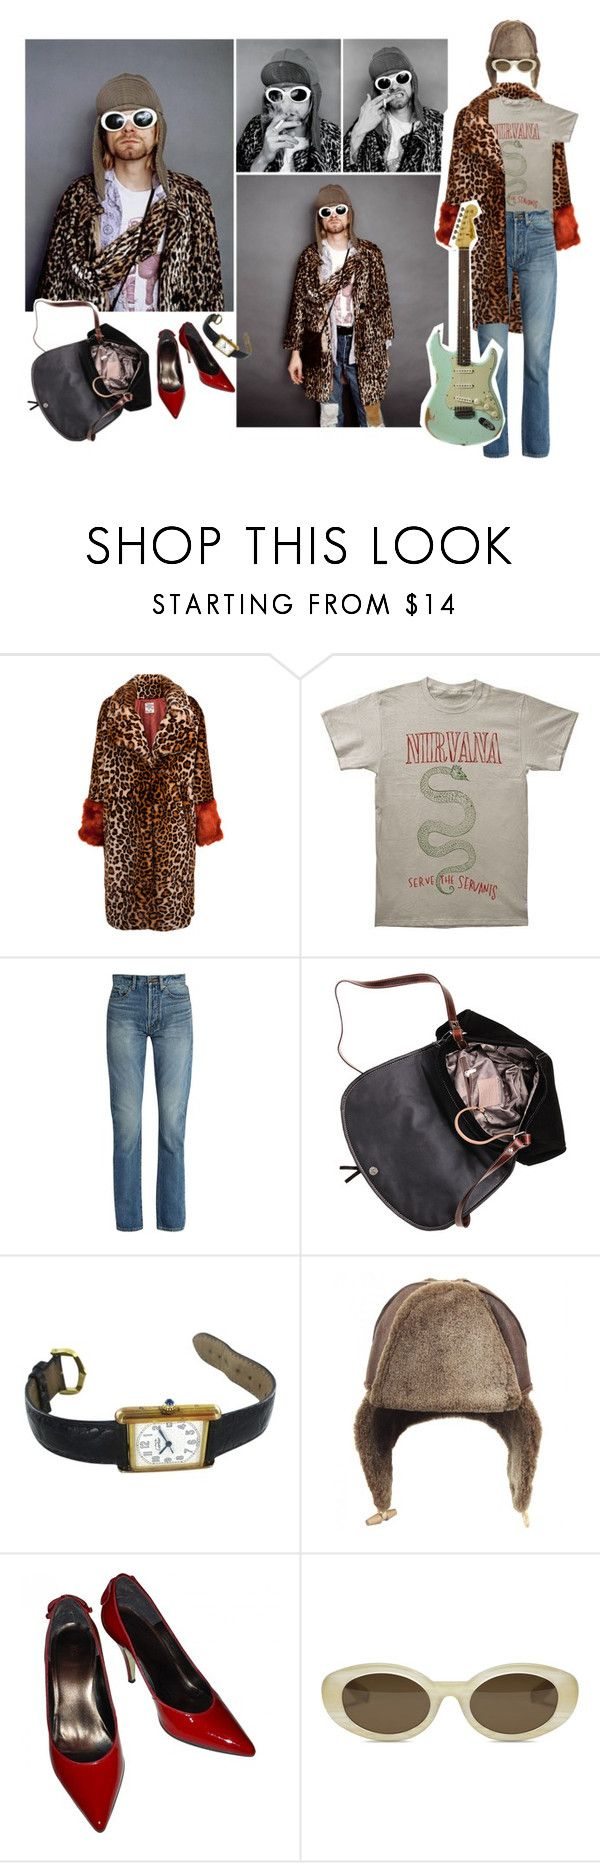 """""""KC50"""" by alicenalesso ❤ liked on Polyvore featuring Baum und Pferdgarten, Yves Saint Laurent, Cartier, Paul Smith, Kurt Geiger and Elizabeth and James"""